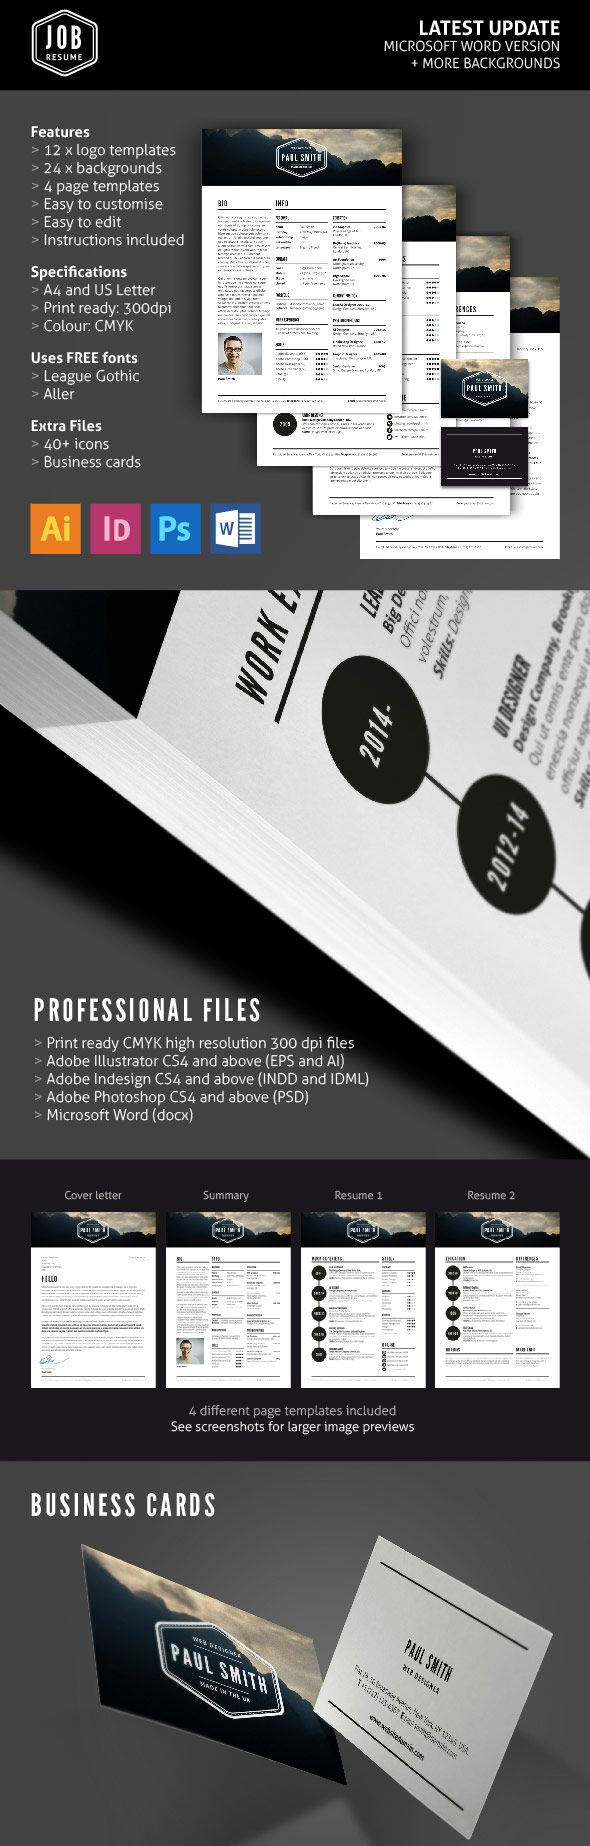 Job Resume Template Set With Logos  Business Cards  Custom